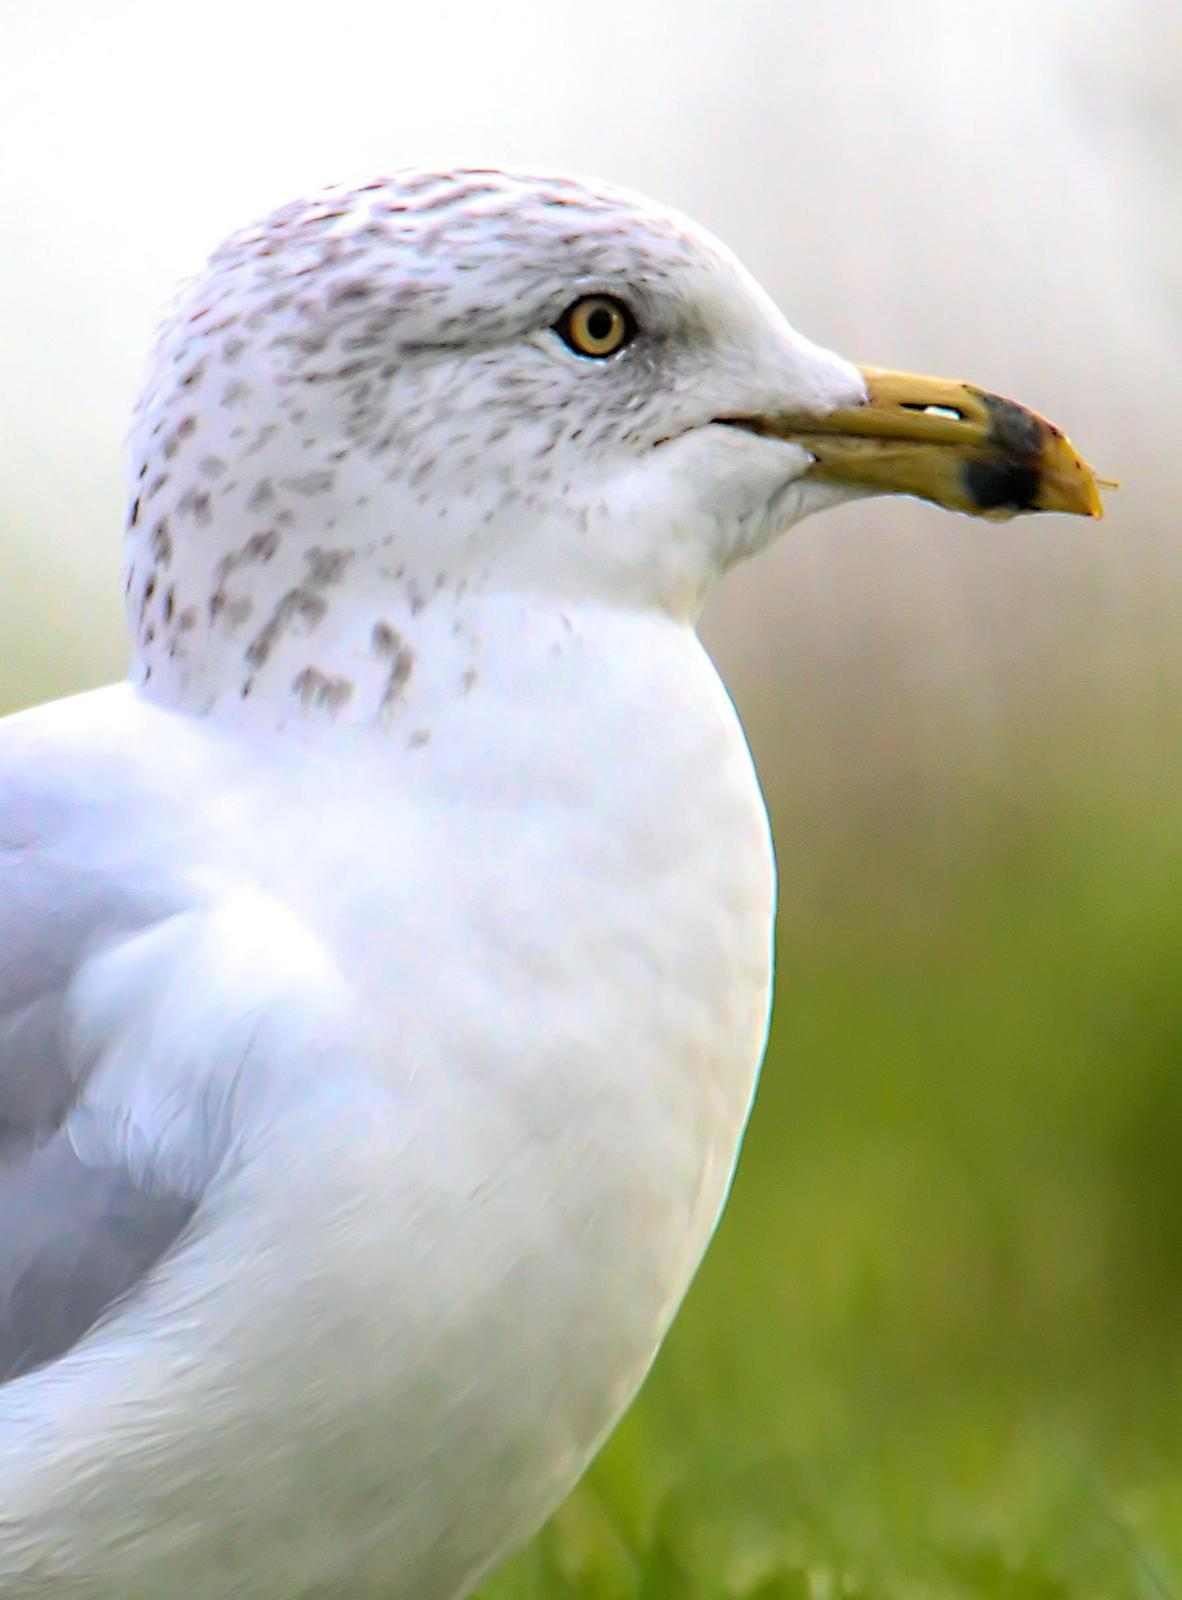 Ring-billed Gull Photo by Dan Tallman